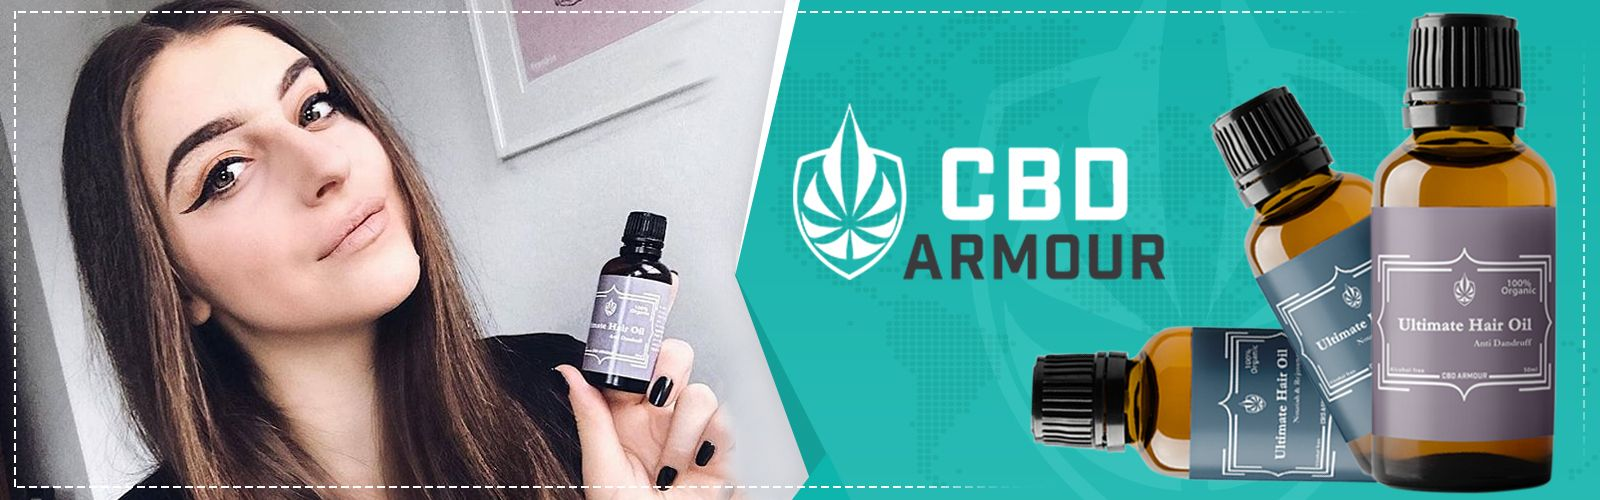 What are the benefits of using Hemp Oil in your Daily Routine